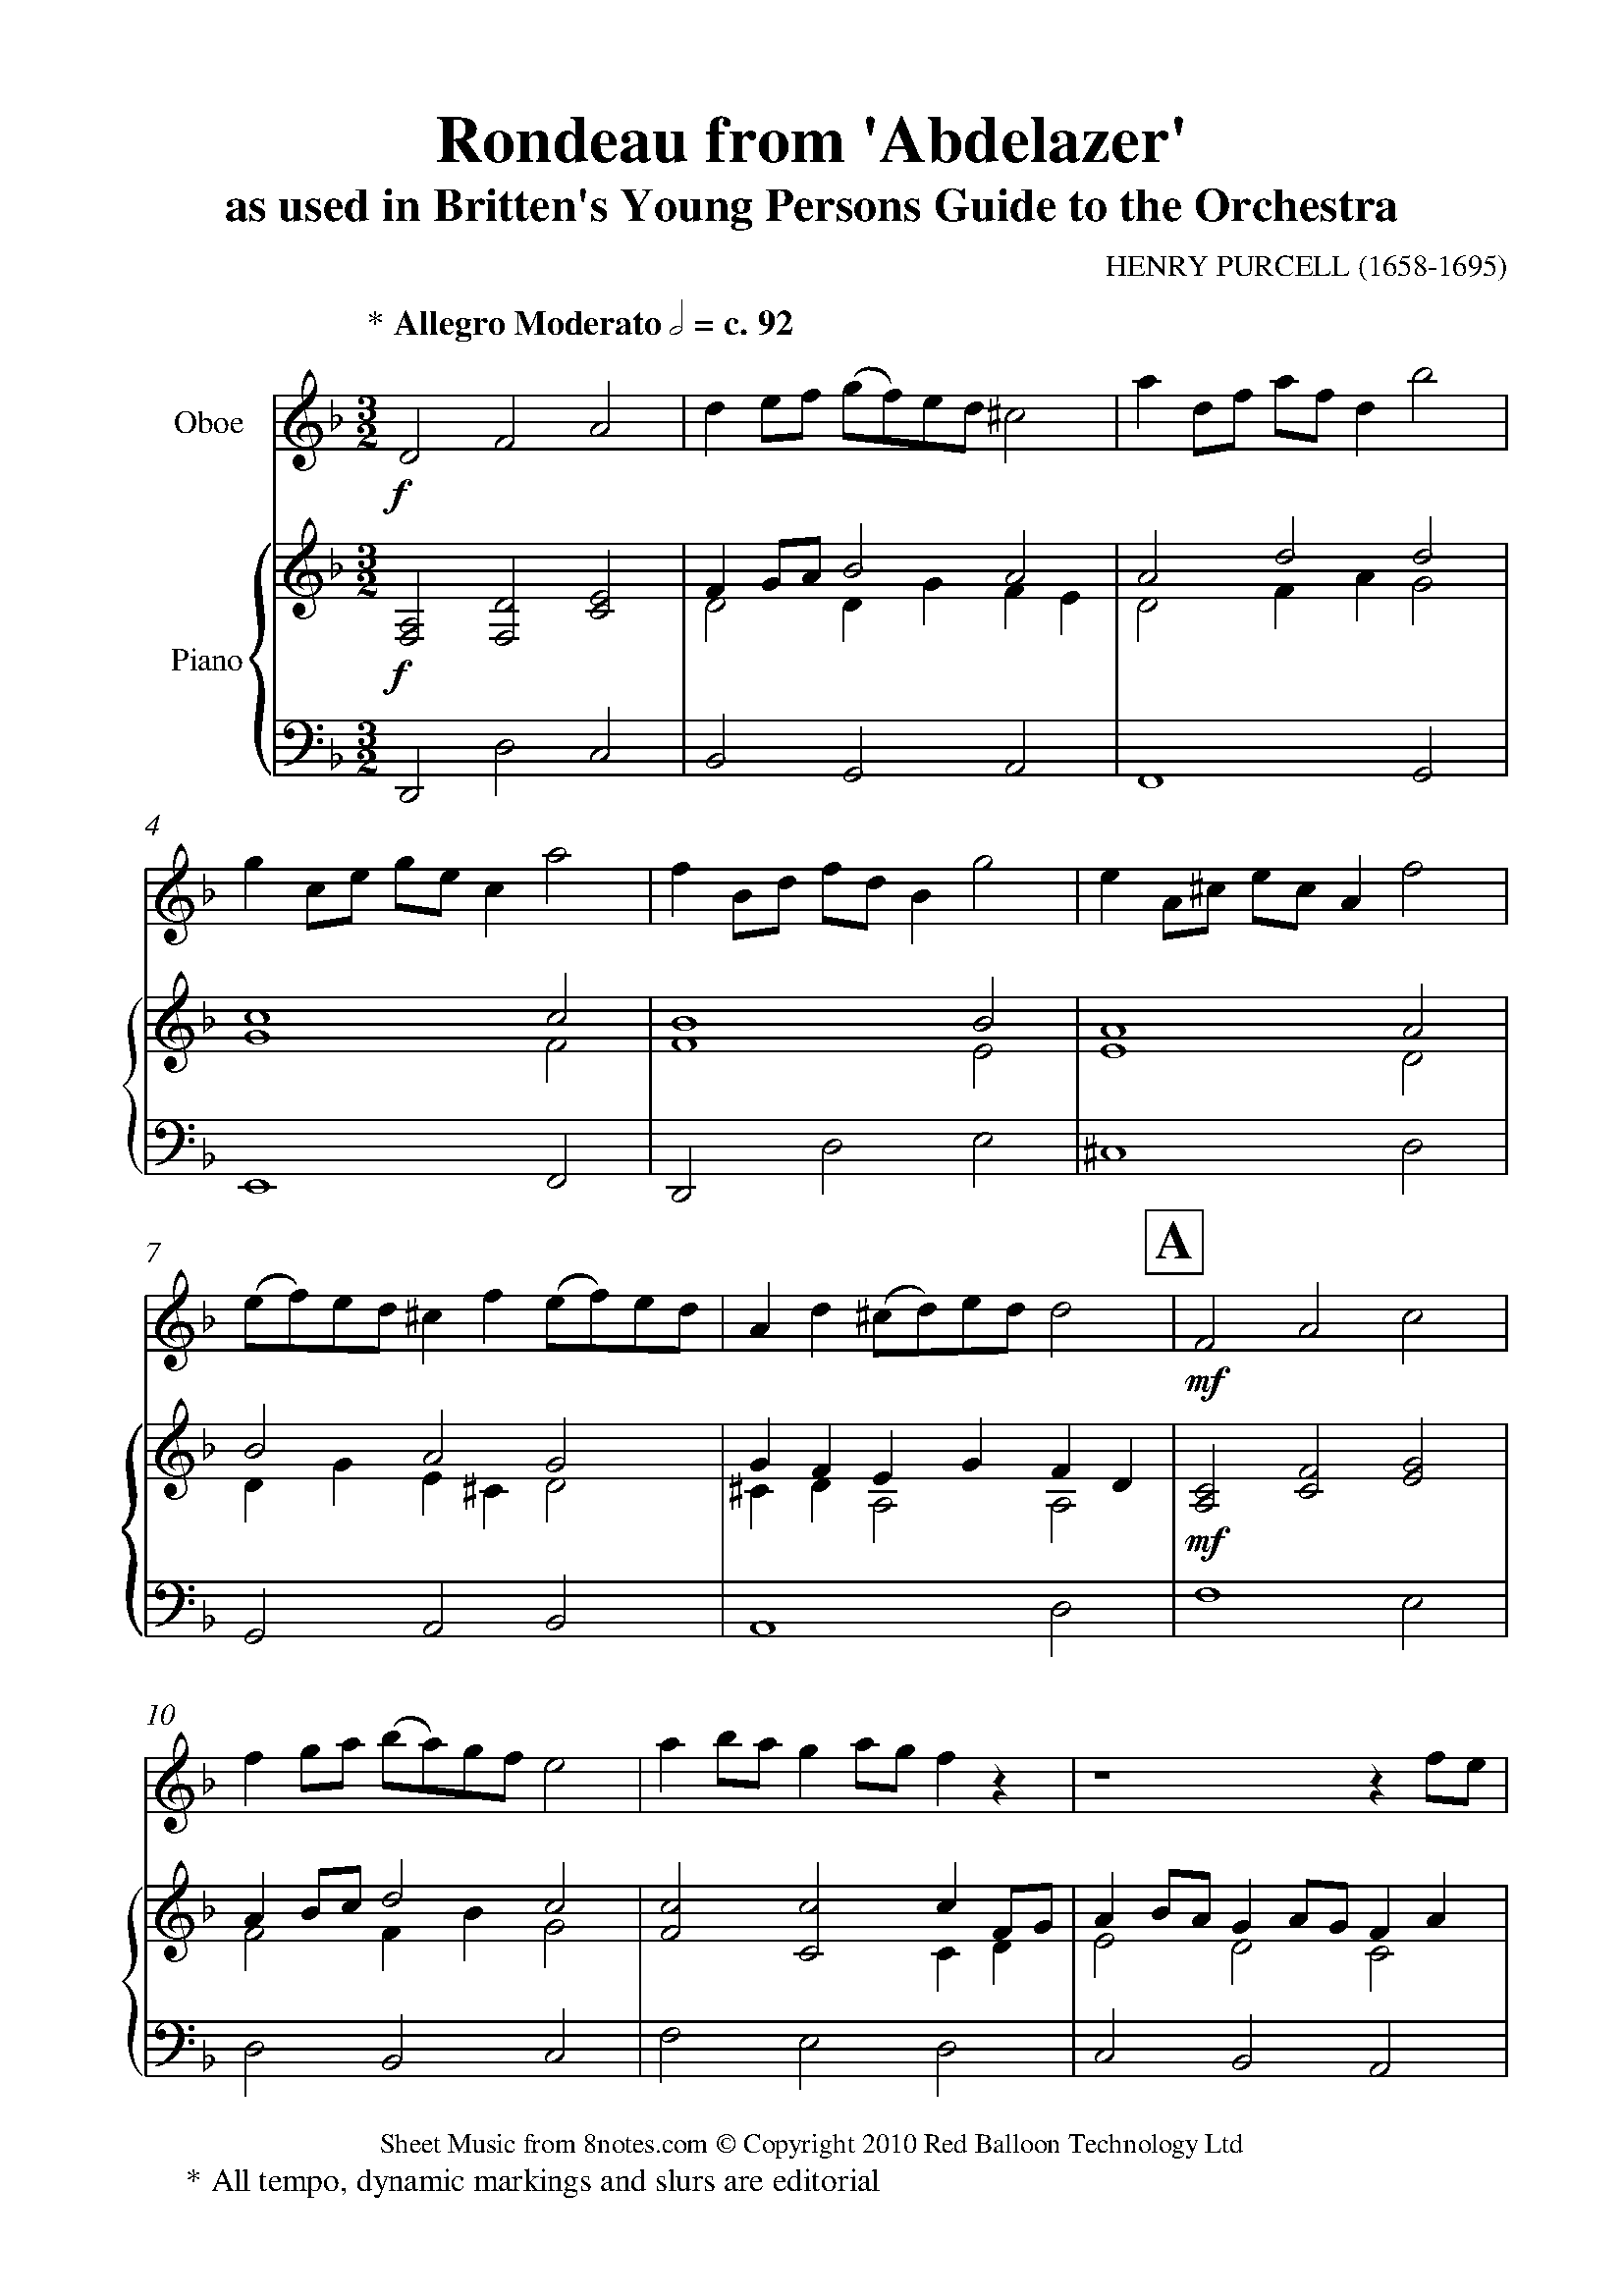 britten - young persons guide to the orchestra theme (purcells rondeau) sheet  music for oboe - 8notes.com  8notes